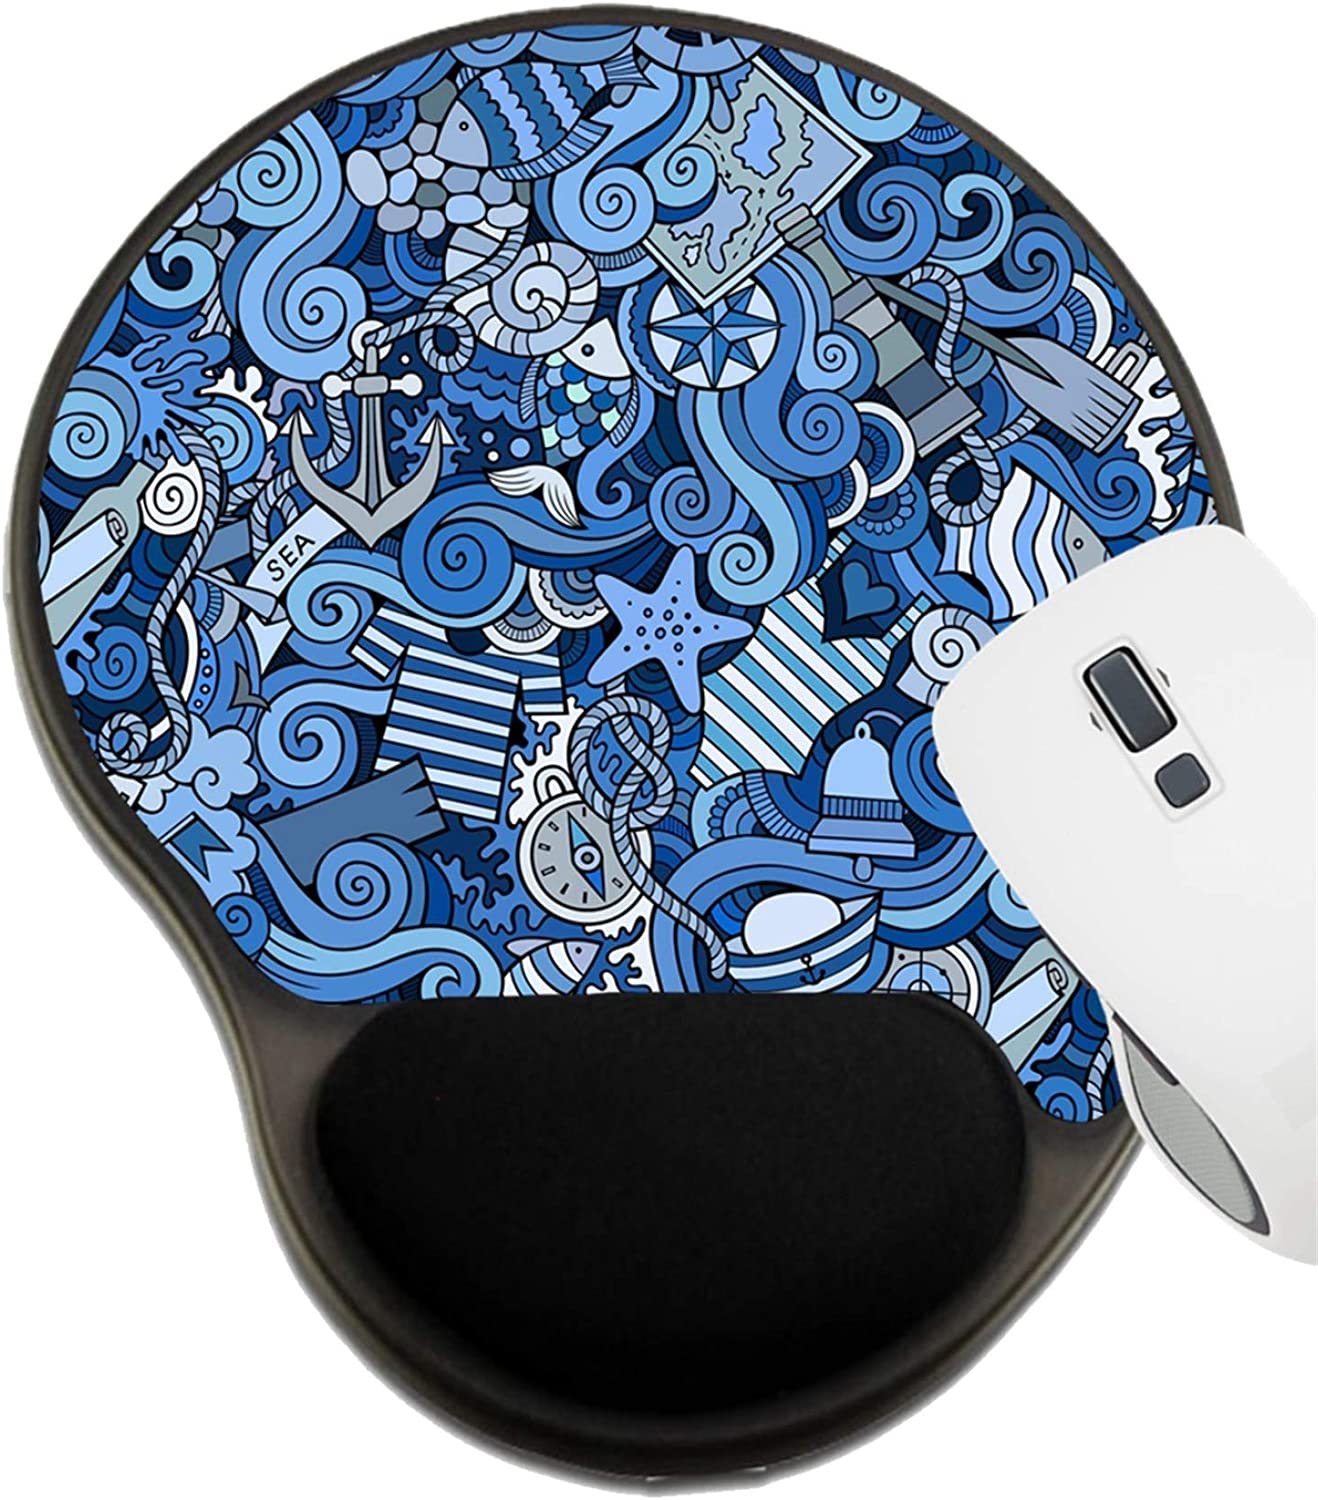 MSD Mousepad Wrist Rest Protected Mouse Pads 40908764 Seamless Abstract Pattern Nautical and Marine Background Mat with Wrist Support ID